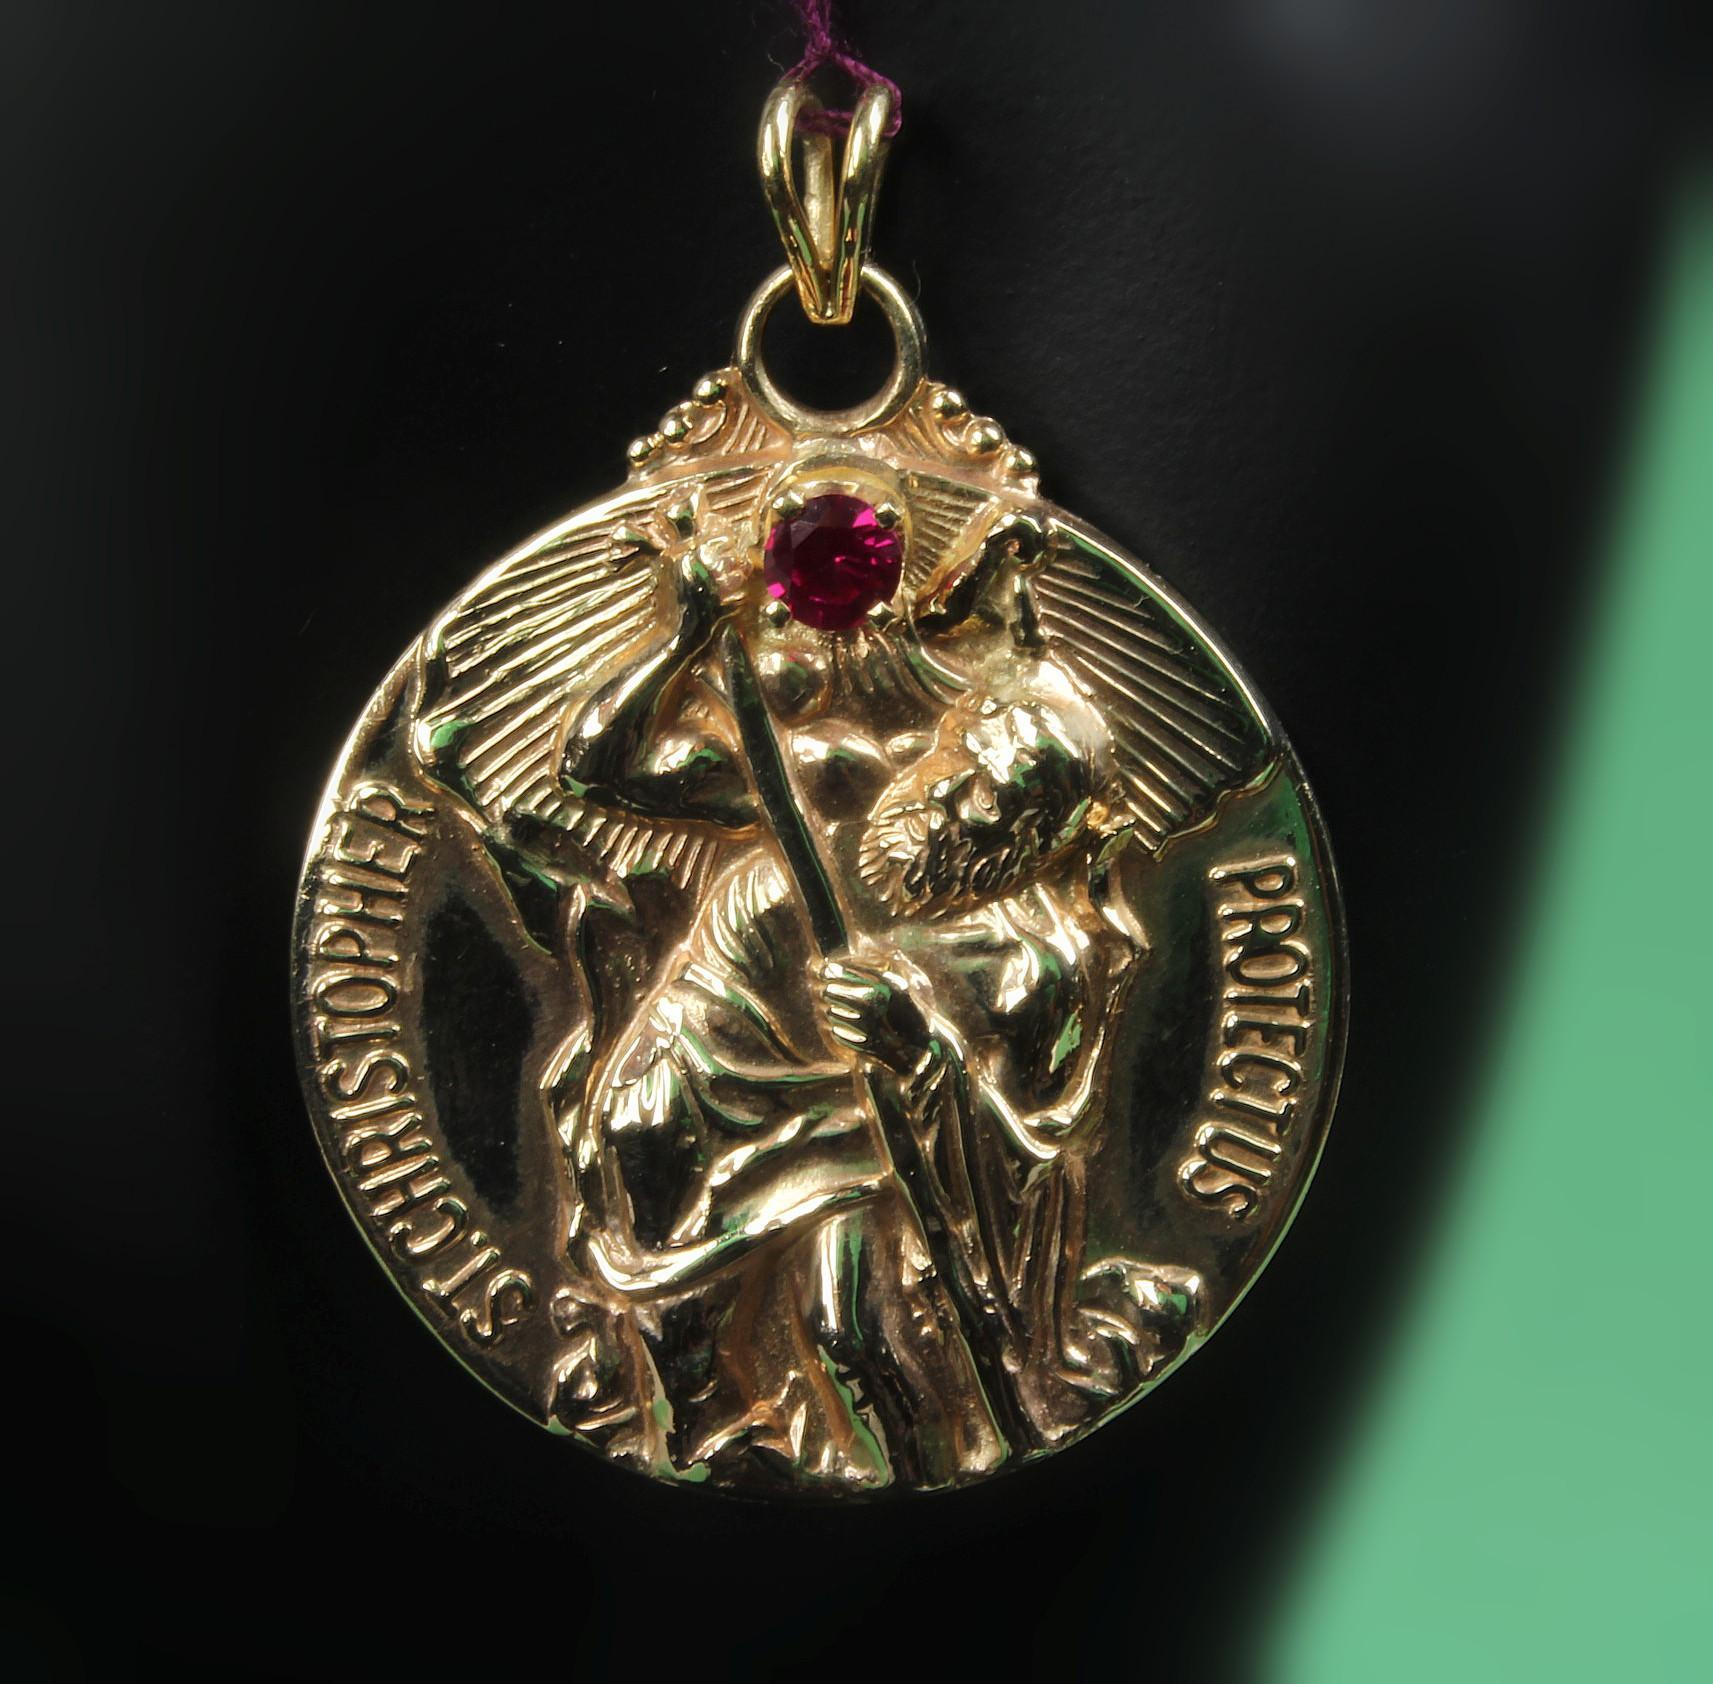 10k gold st christopher medal pendant with ruby ca 1960s sold 10k gold st christopher medal pendant with ruby ca 1960s sold ruby lane aloadofball Choice Image